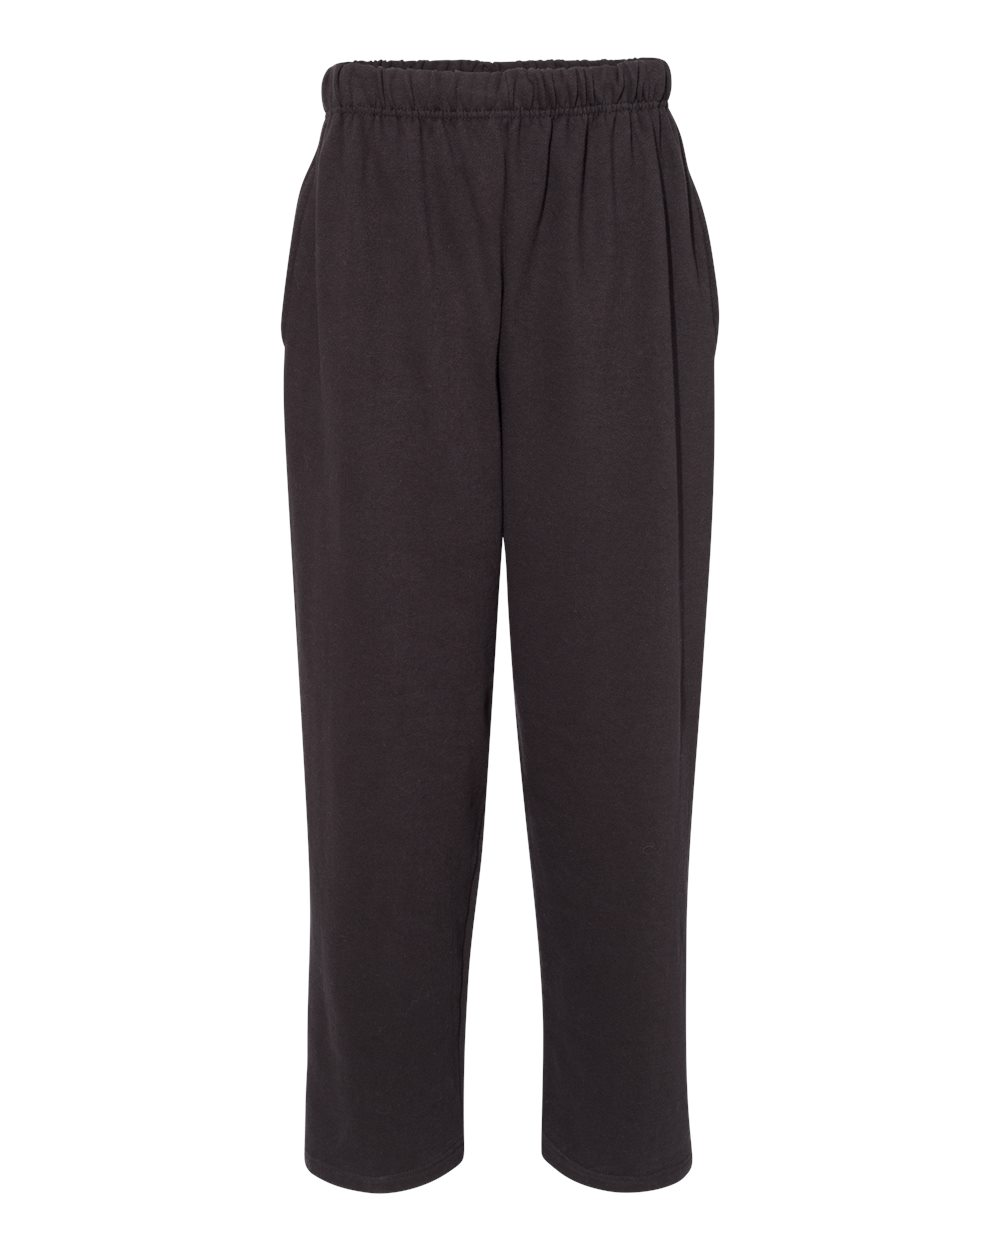 C2-Sport-Mens-Open-Bottom-Sweatpants-With-Pockets-5577-up-to-4XL thumbnail 6